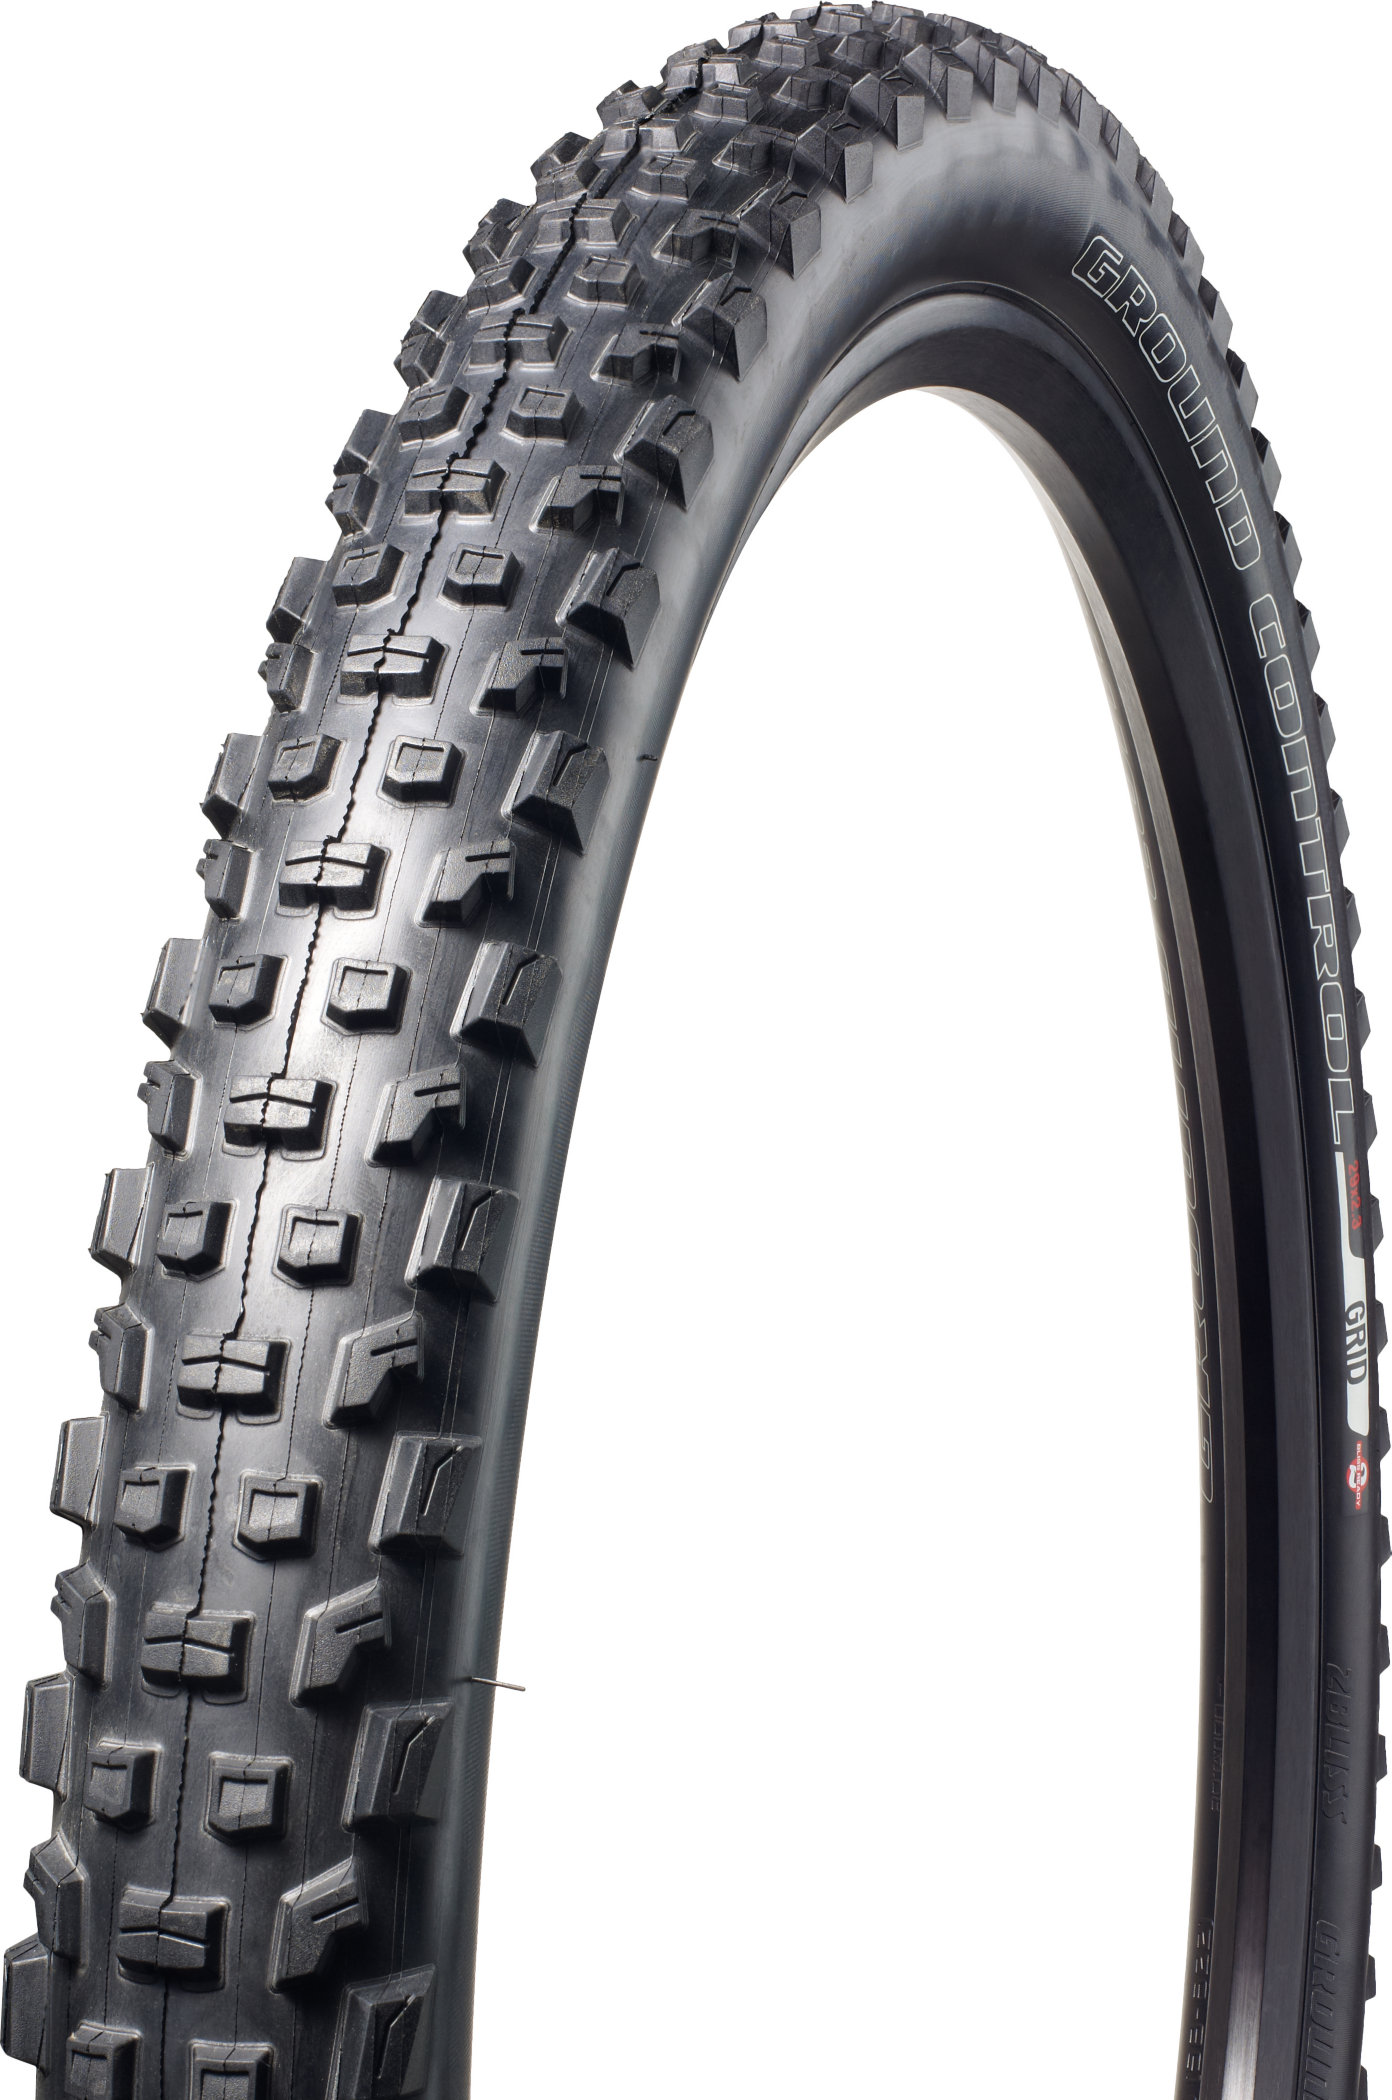 SPECIALIZED GROUND CONTROL GRID 2BR TIRE 29X2.3 - SPECIALIZED GROUND CONTROL GRID 2BR TIRE 29X2.3